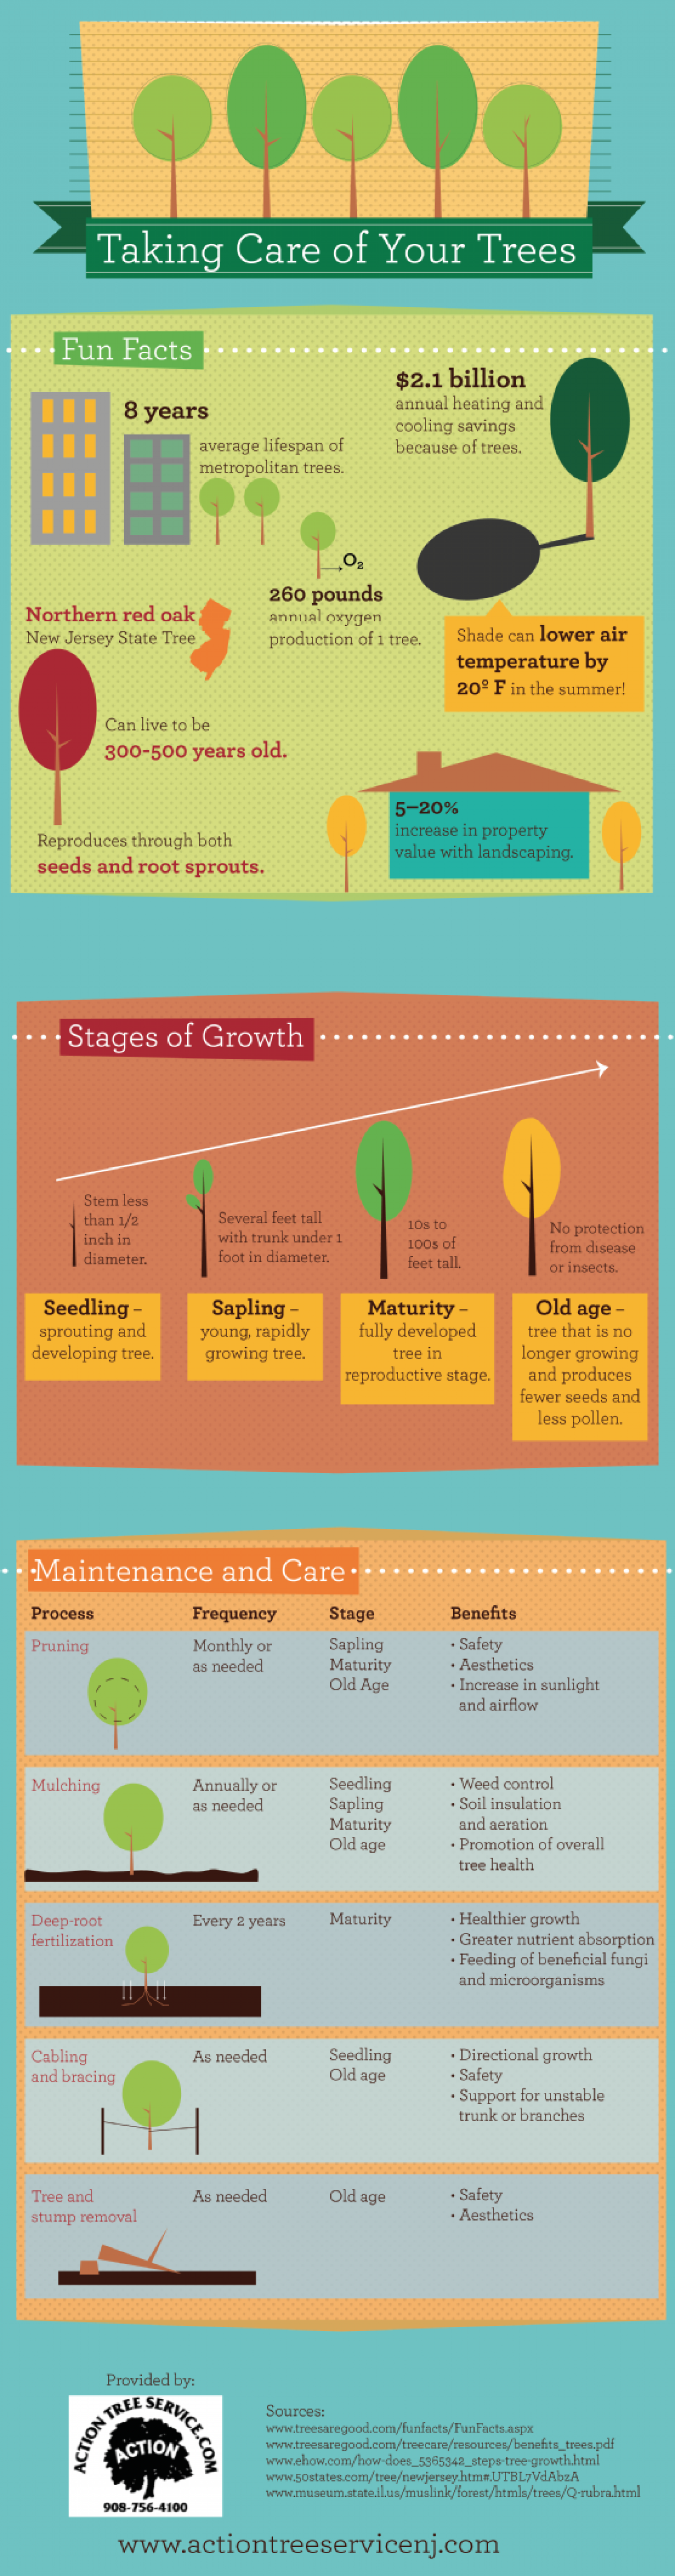 Taking Care of Your Trees Infographic